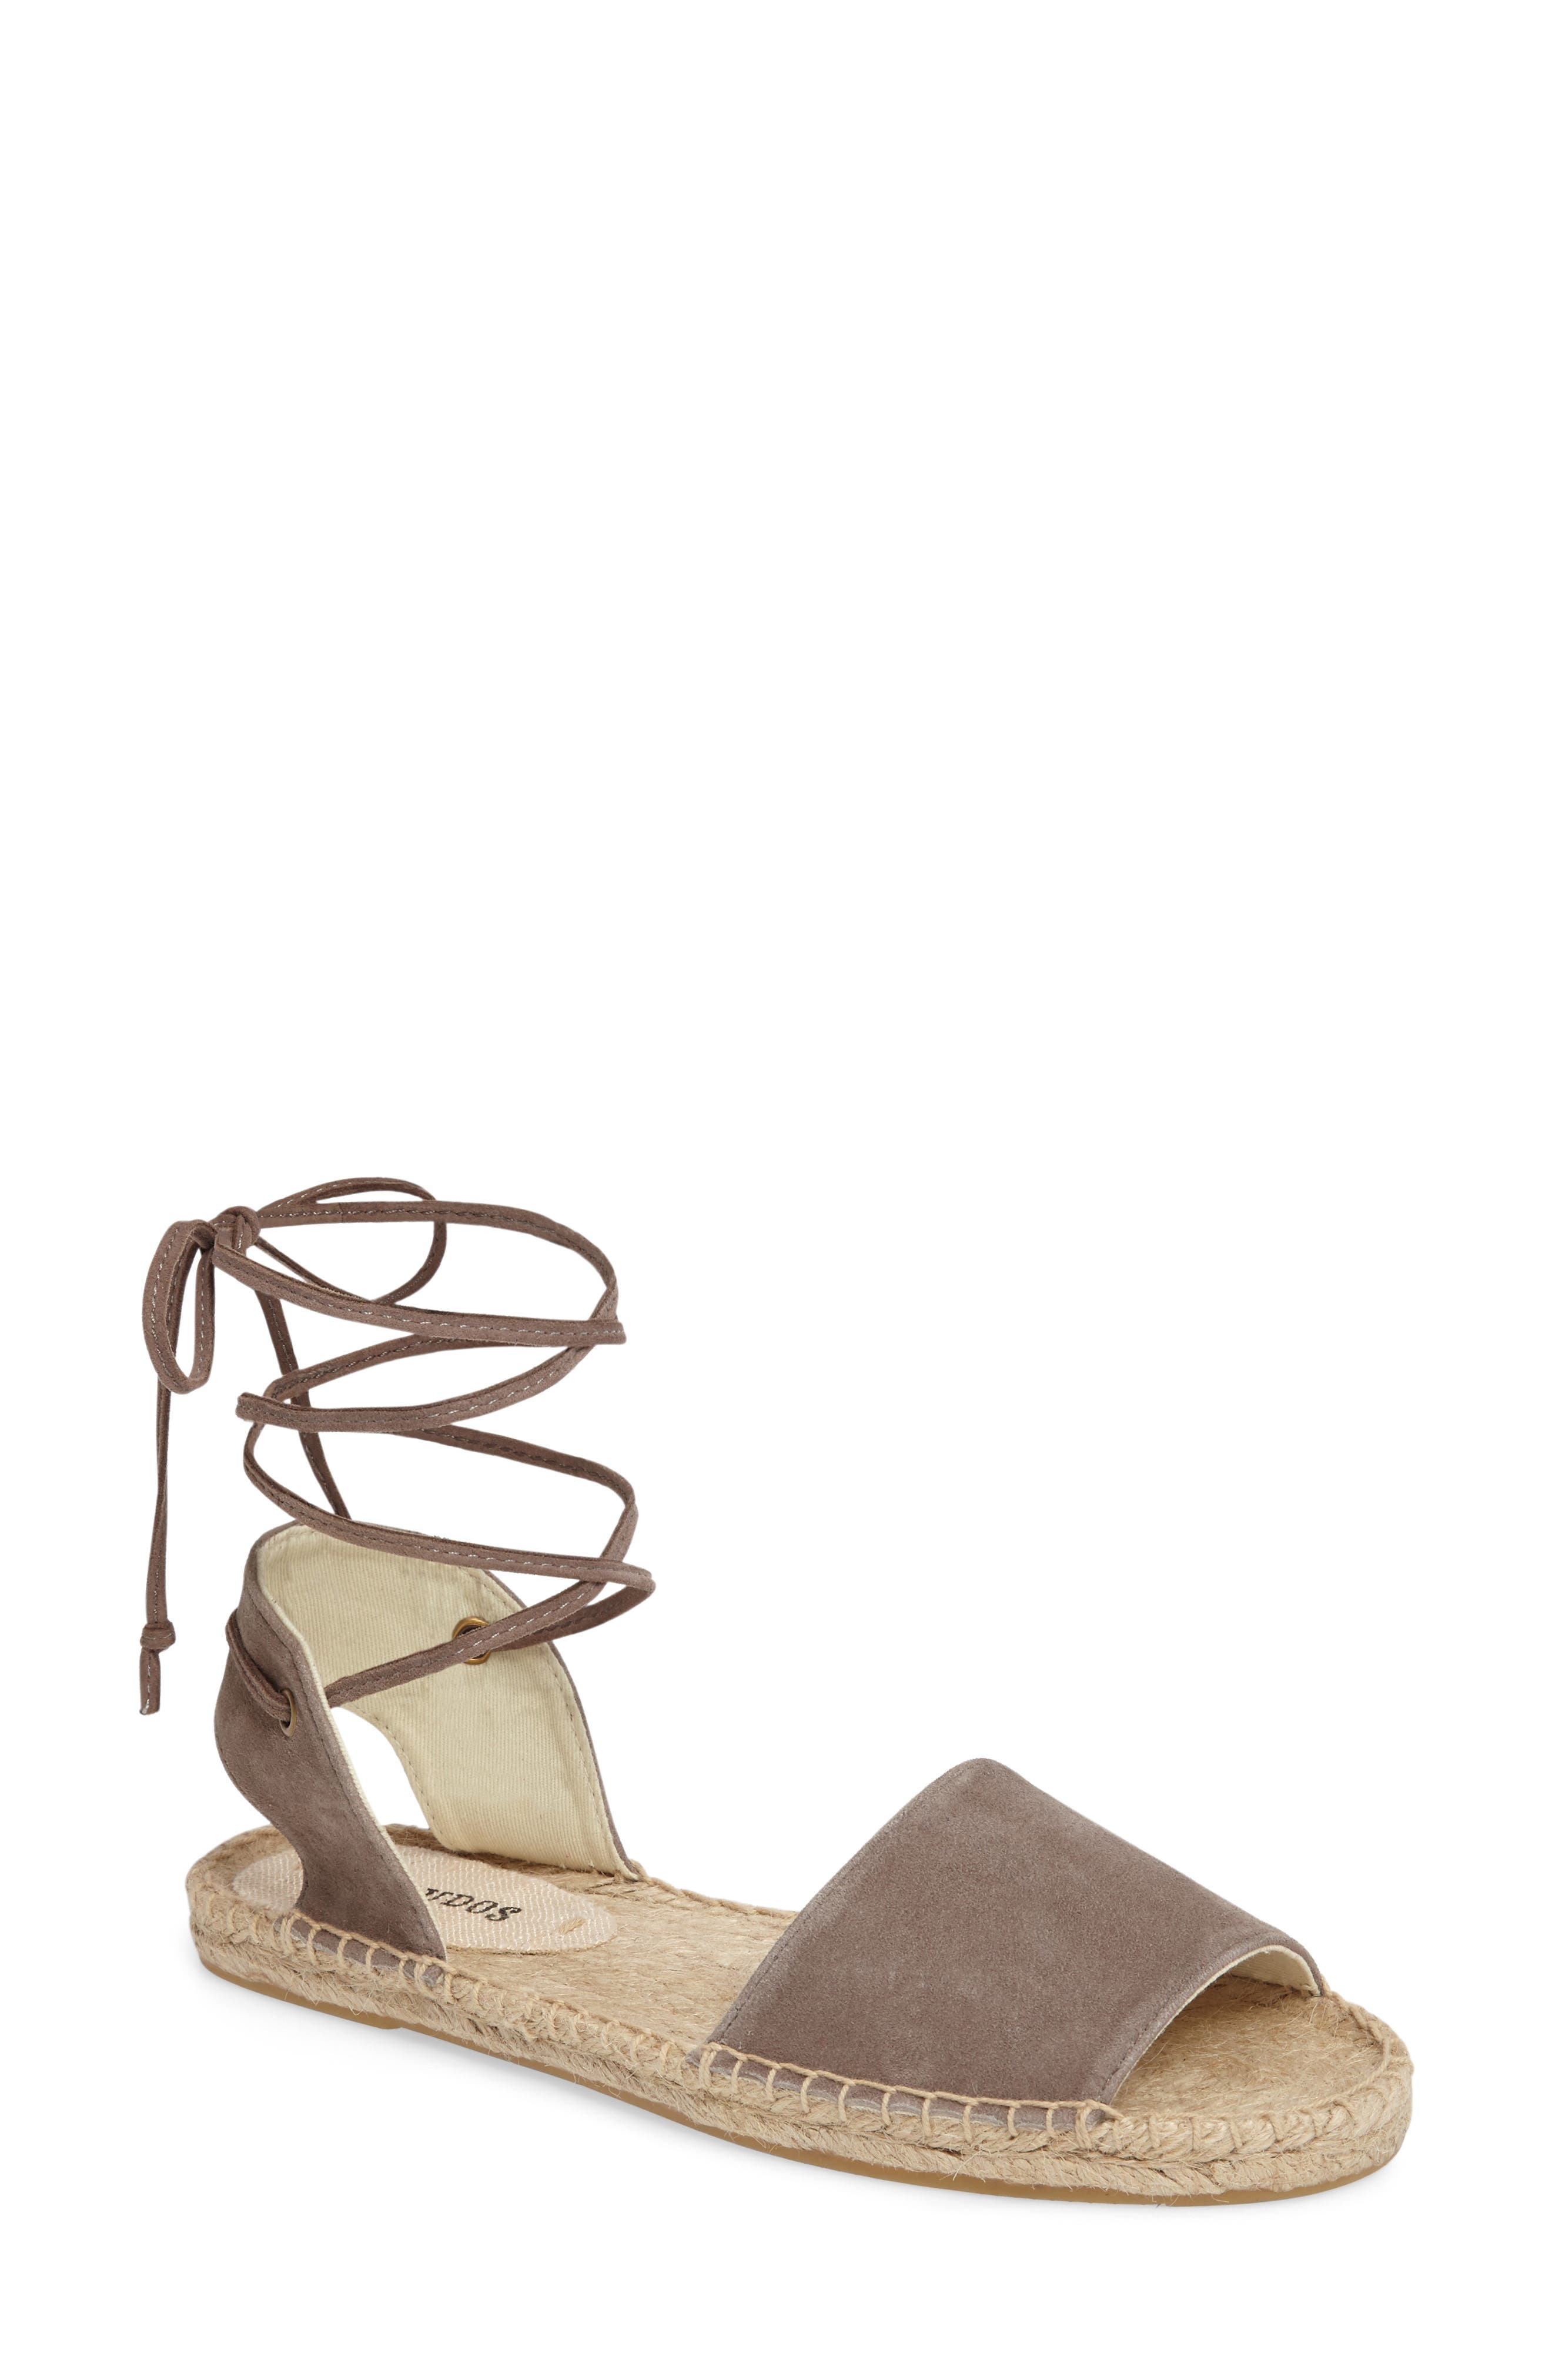 Main Image - Soludos Lace-Up Sandal (Women)